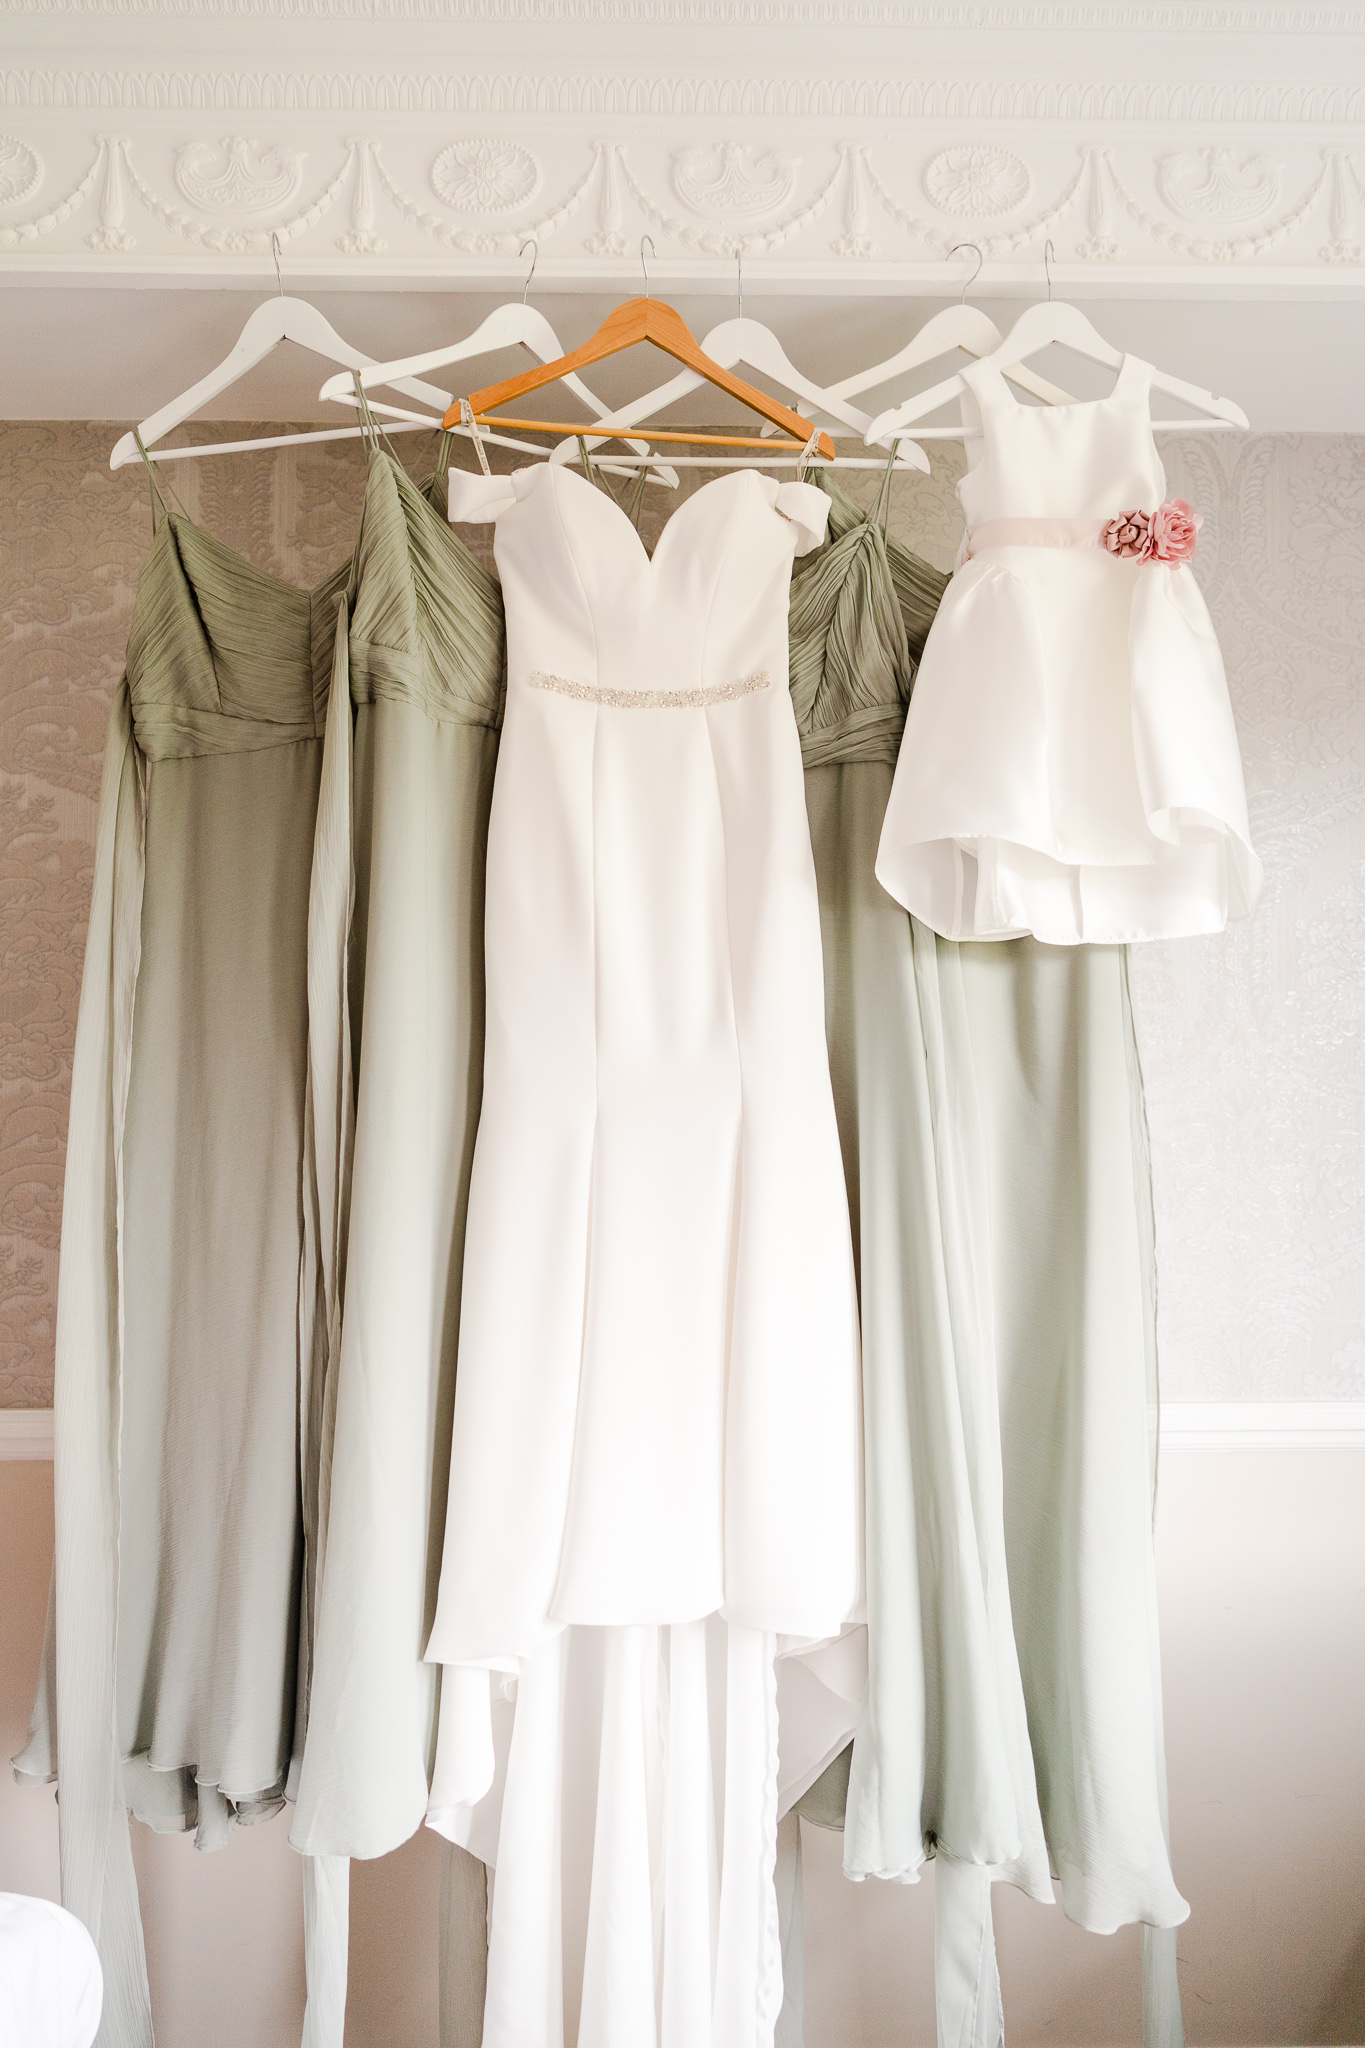 picture of brdie's wedding gown, green brdiesmaid dresses and flower girl dress hanging up